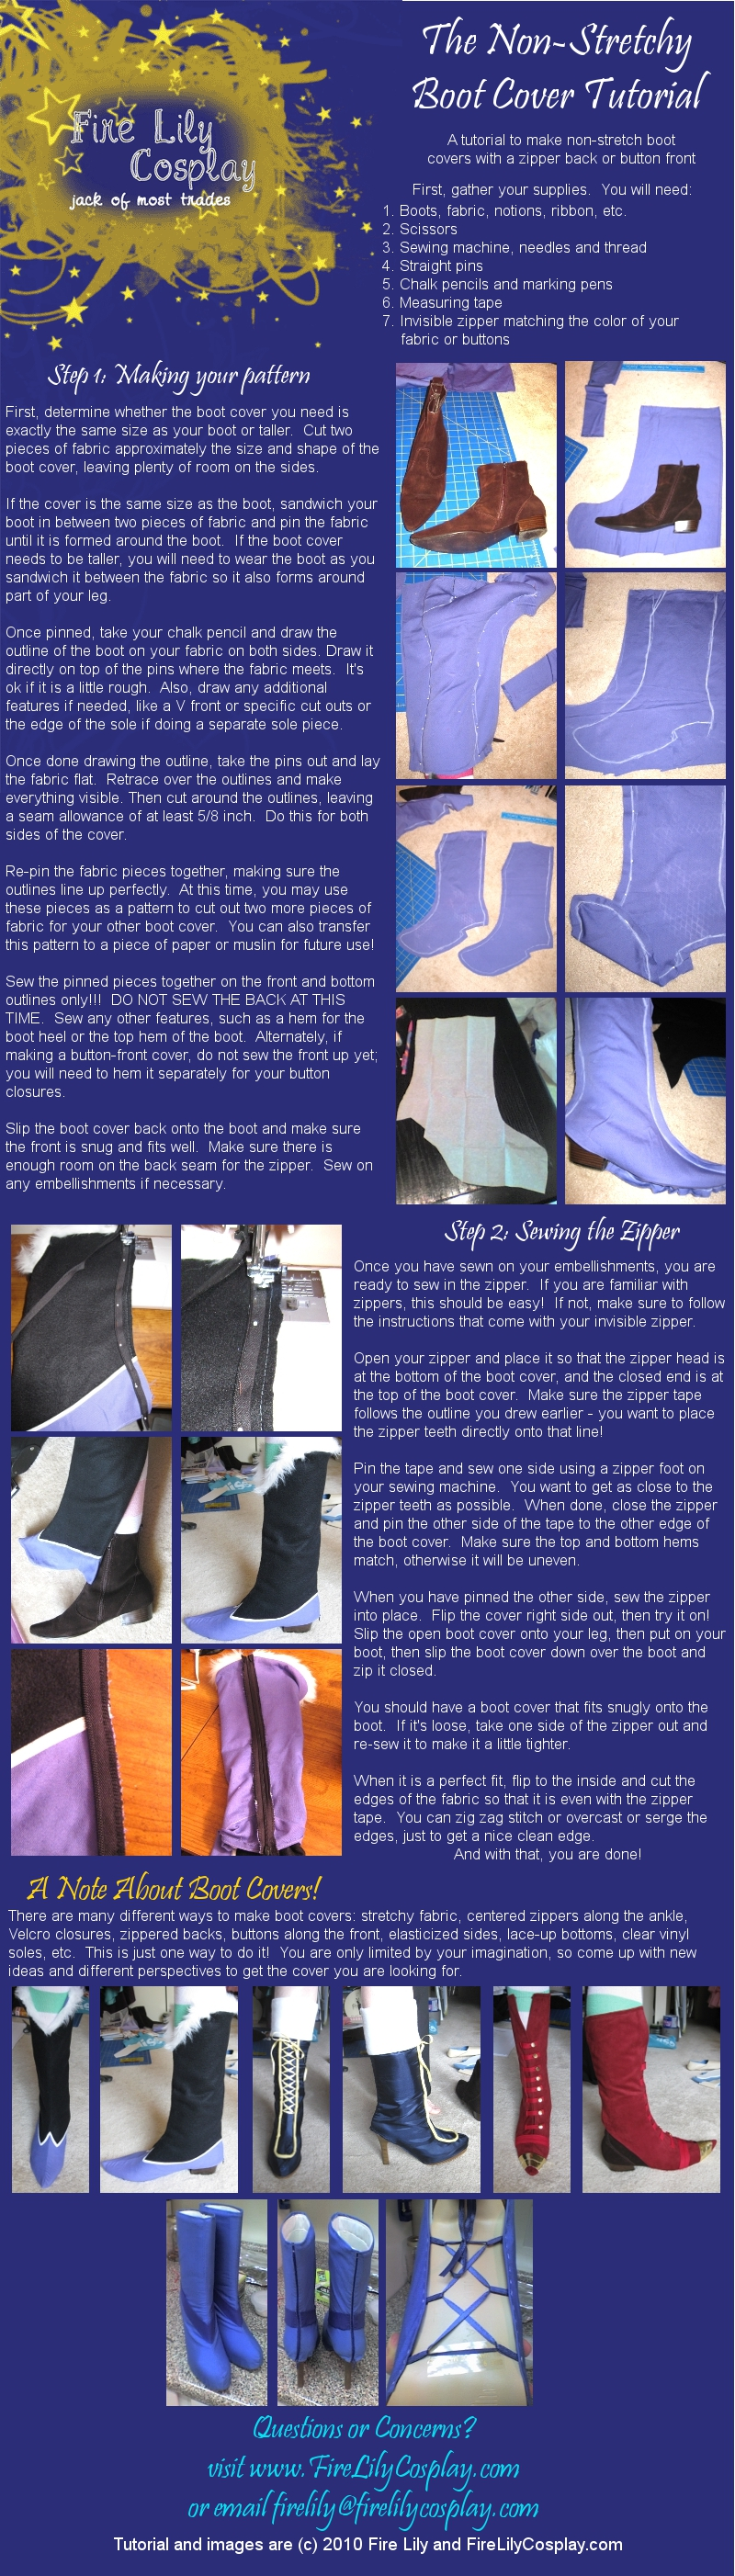 No-Stretch Boot Cover Tutorial by FireLilyCosplay